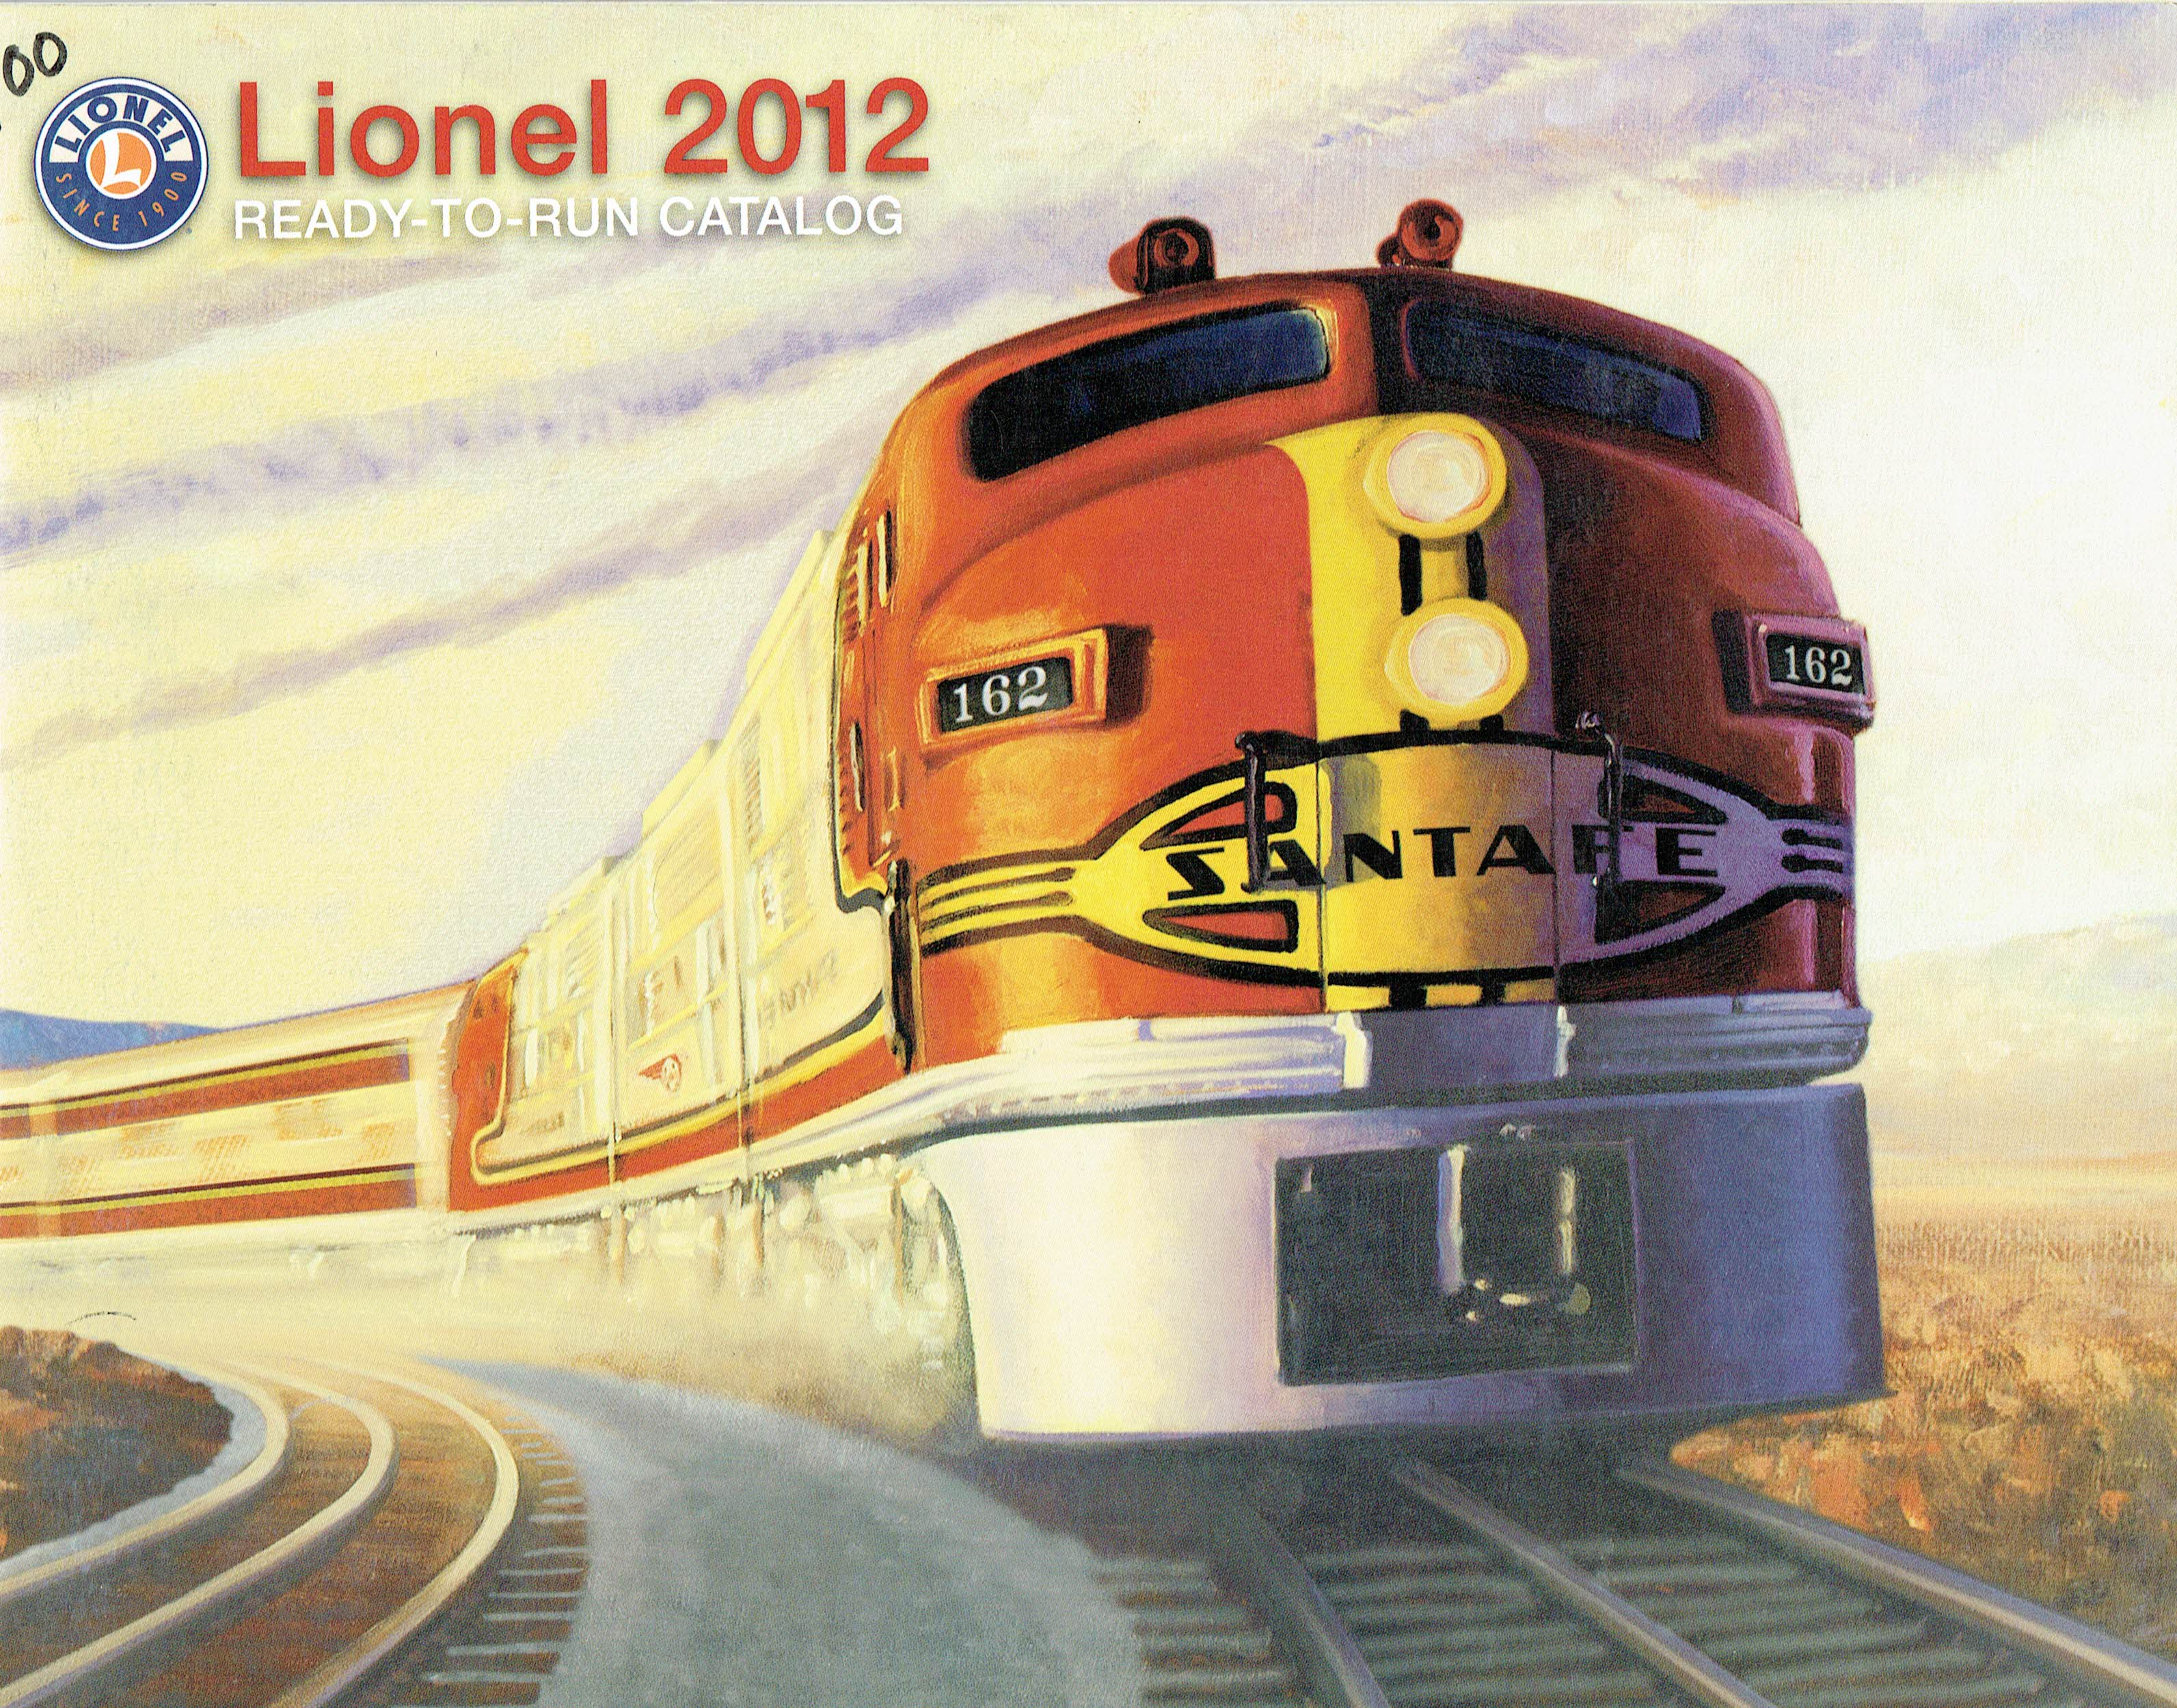 Lionel 2012 Ready-to-Run Catalog image